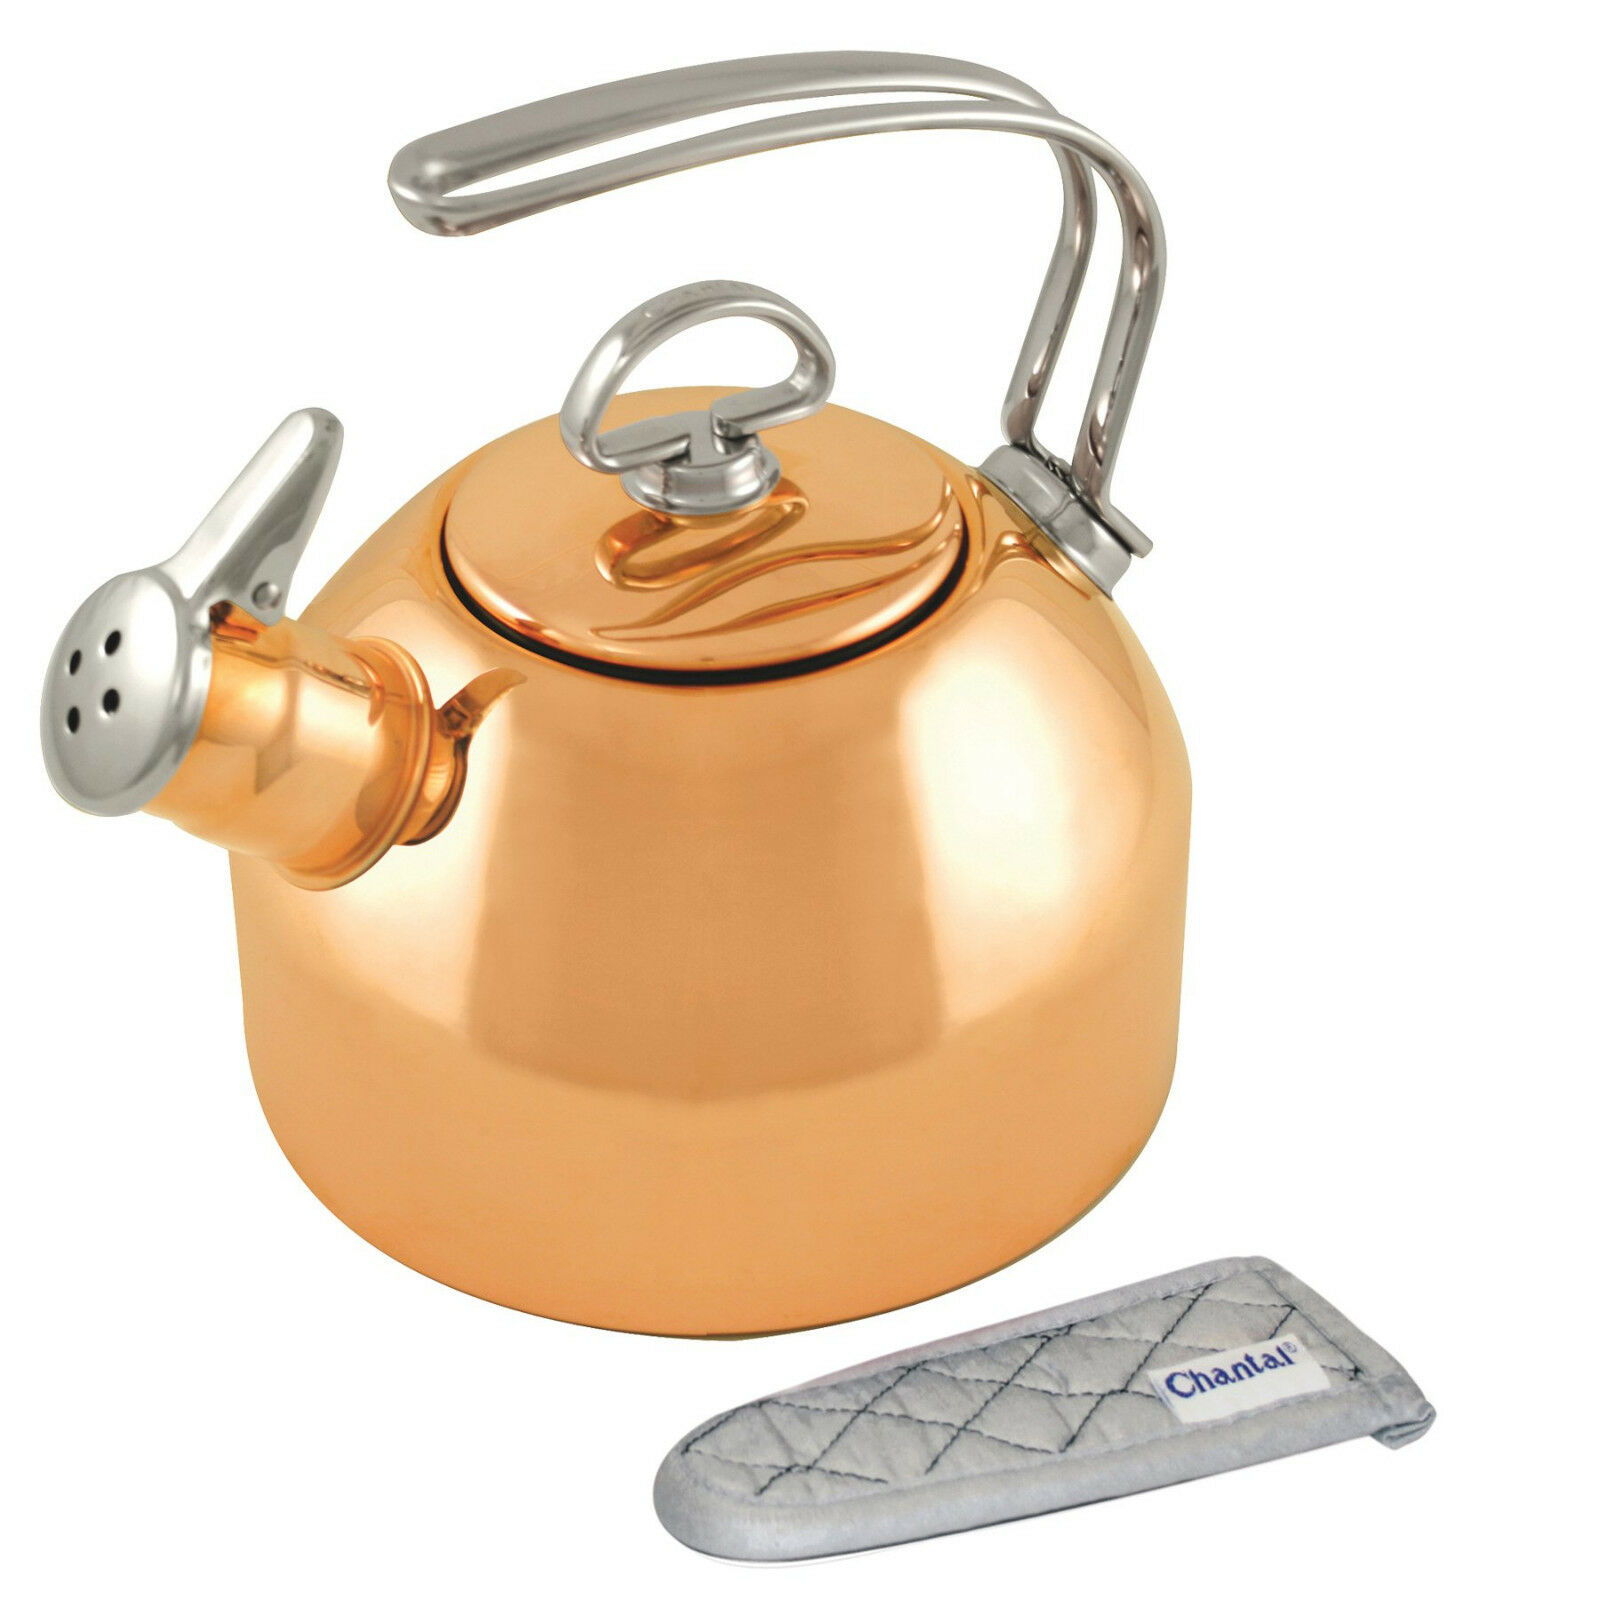 Chantal 1.8 Qt Copper Classic Stovetop Whistle Tea Kettle Teakettle New